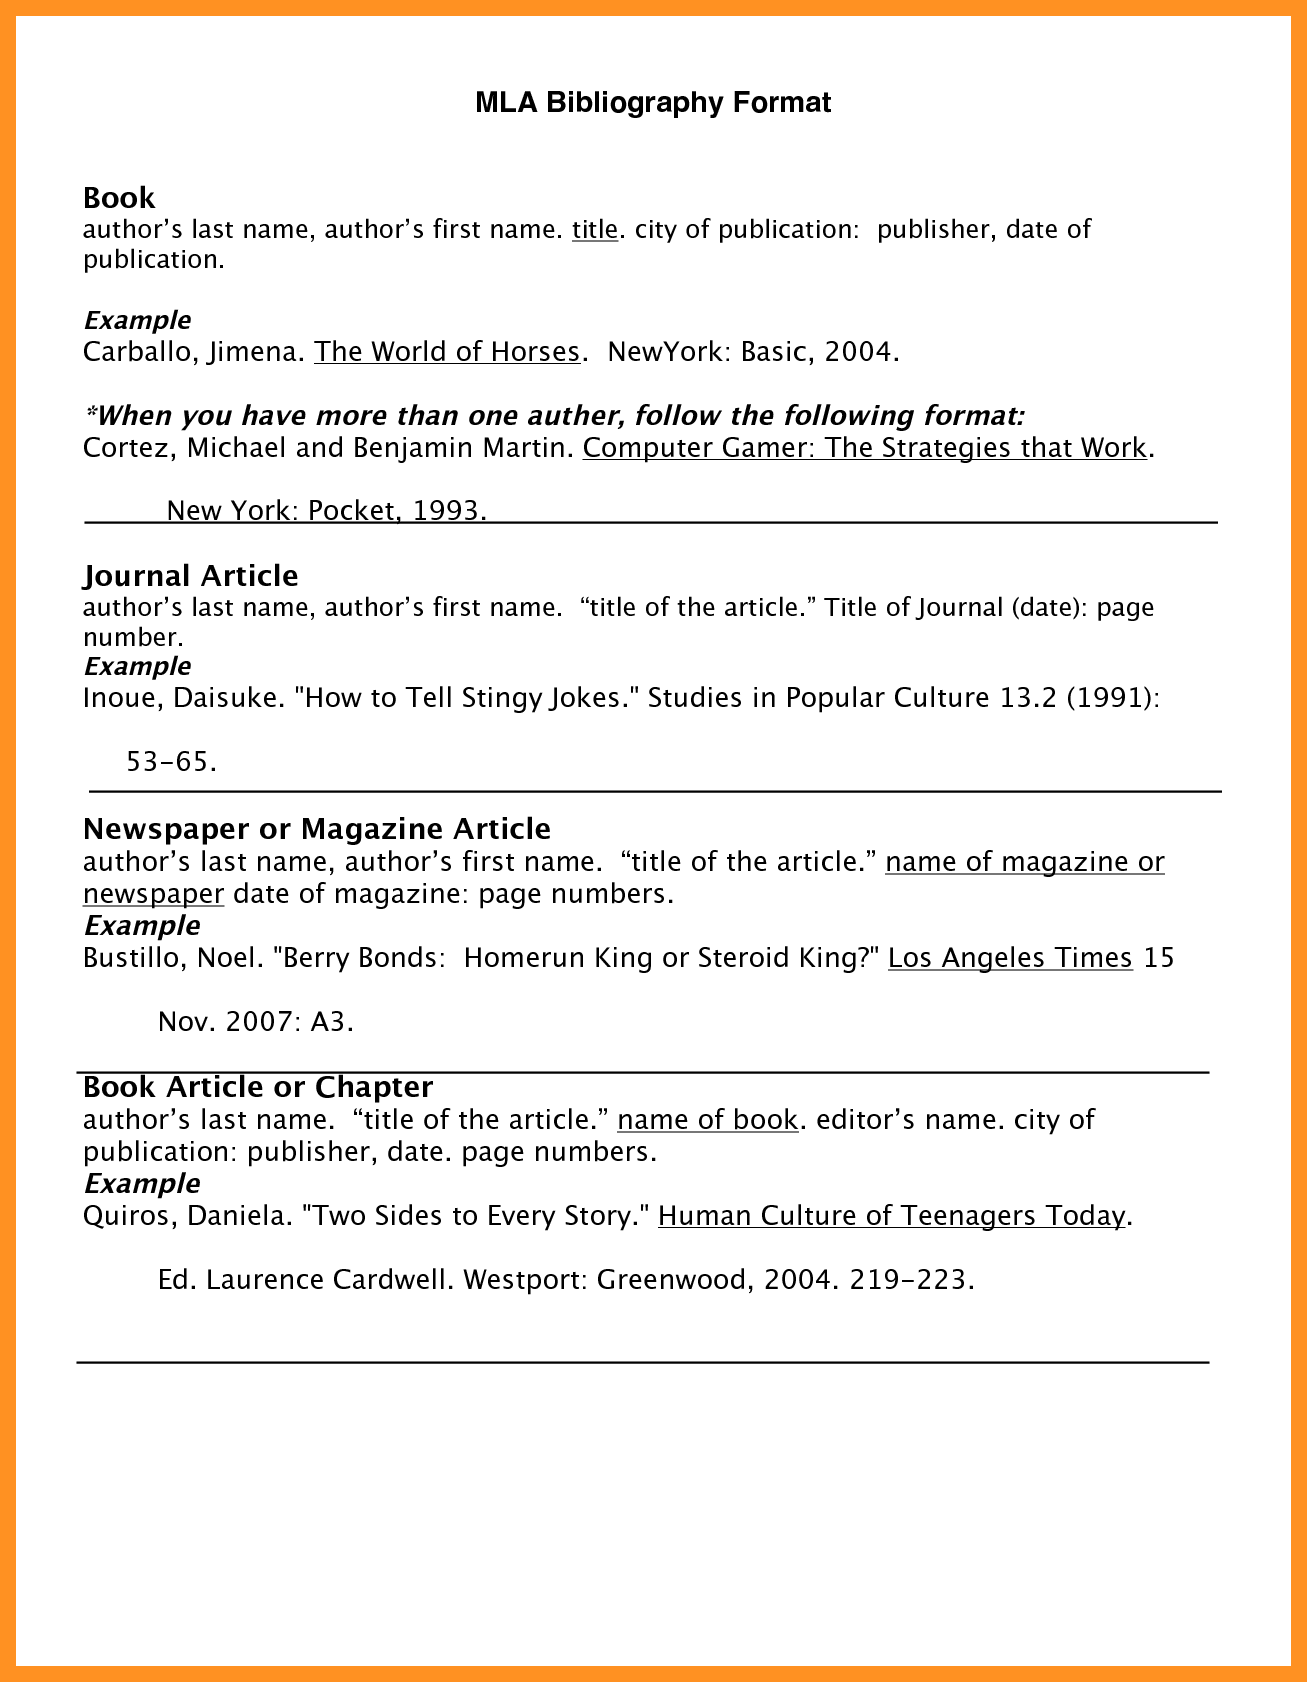 bibliography example mla style.bibliography example mla style.mla -bibliography-format-website-citation-example_81411.png - Mla PNG